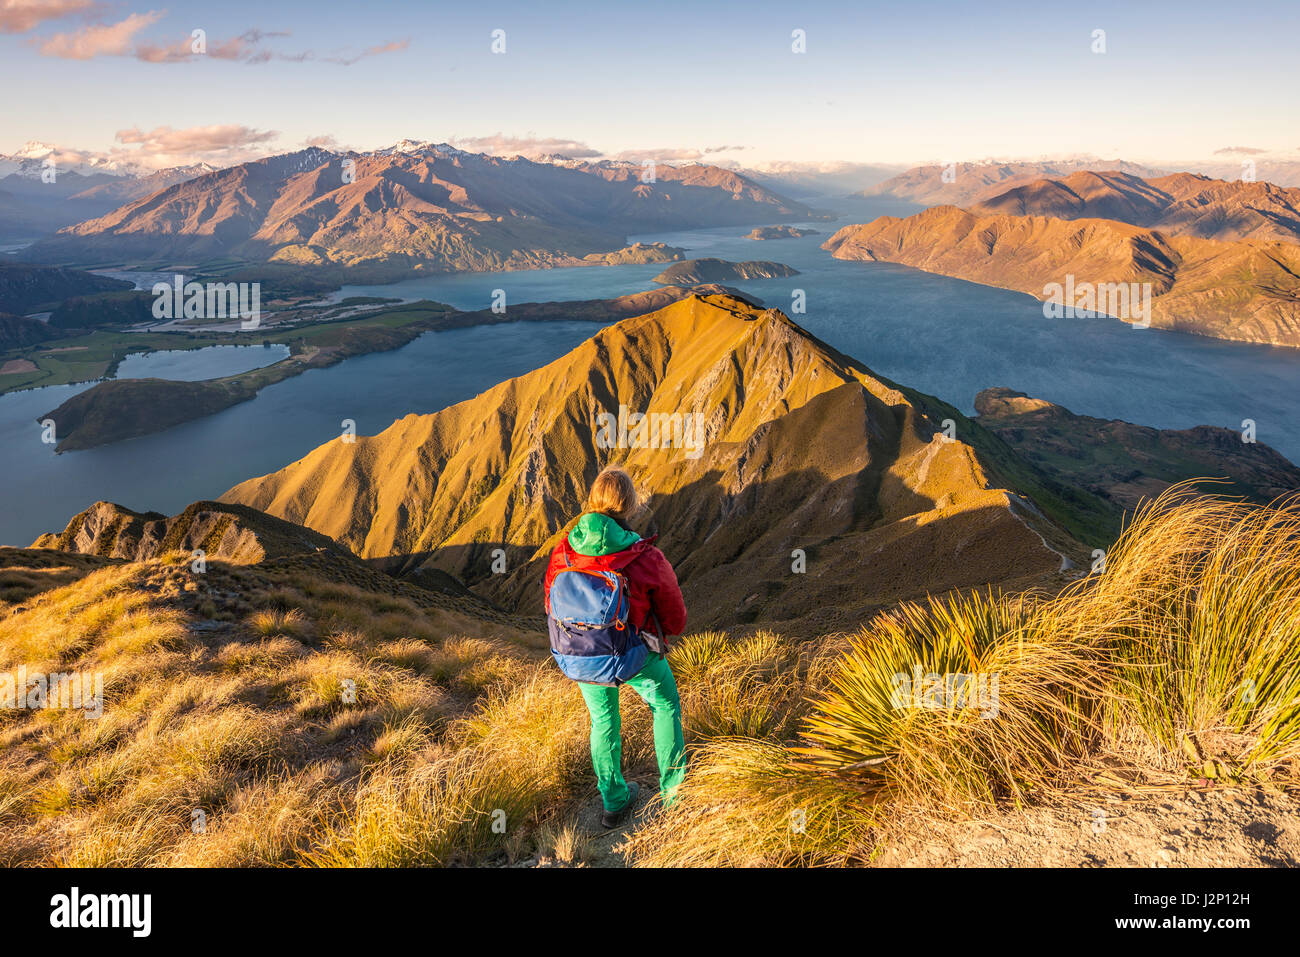 Hiker on path to peak of Roys Peak, evening light, view of mountains and lake, Lake Wanaka, Southern Alps, Otago - Stock Image